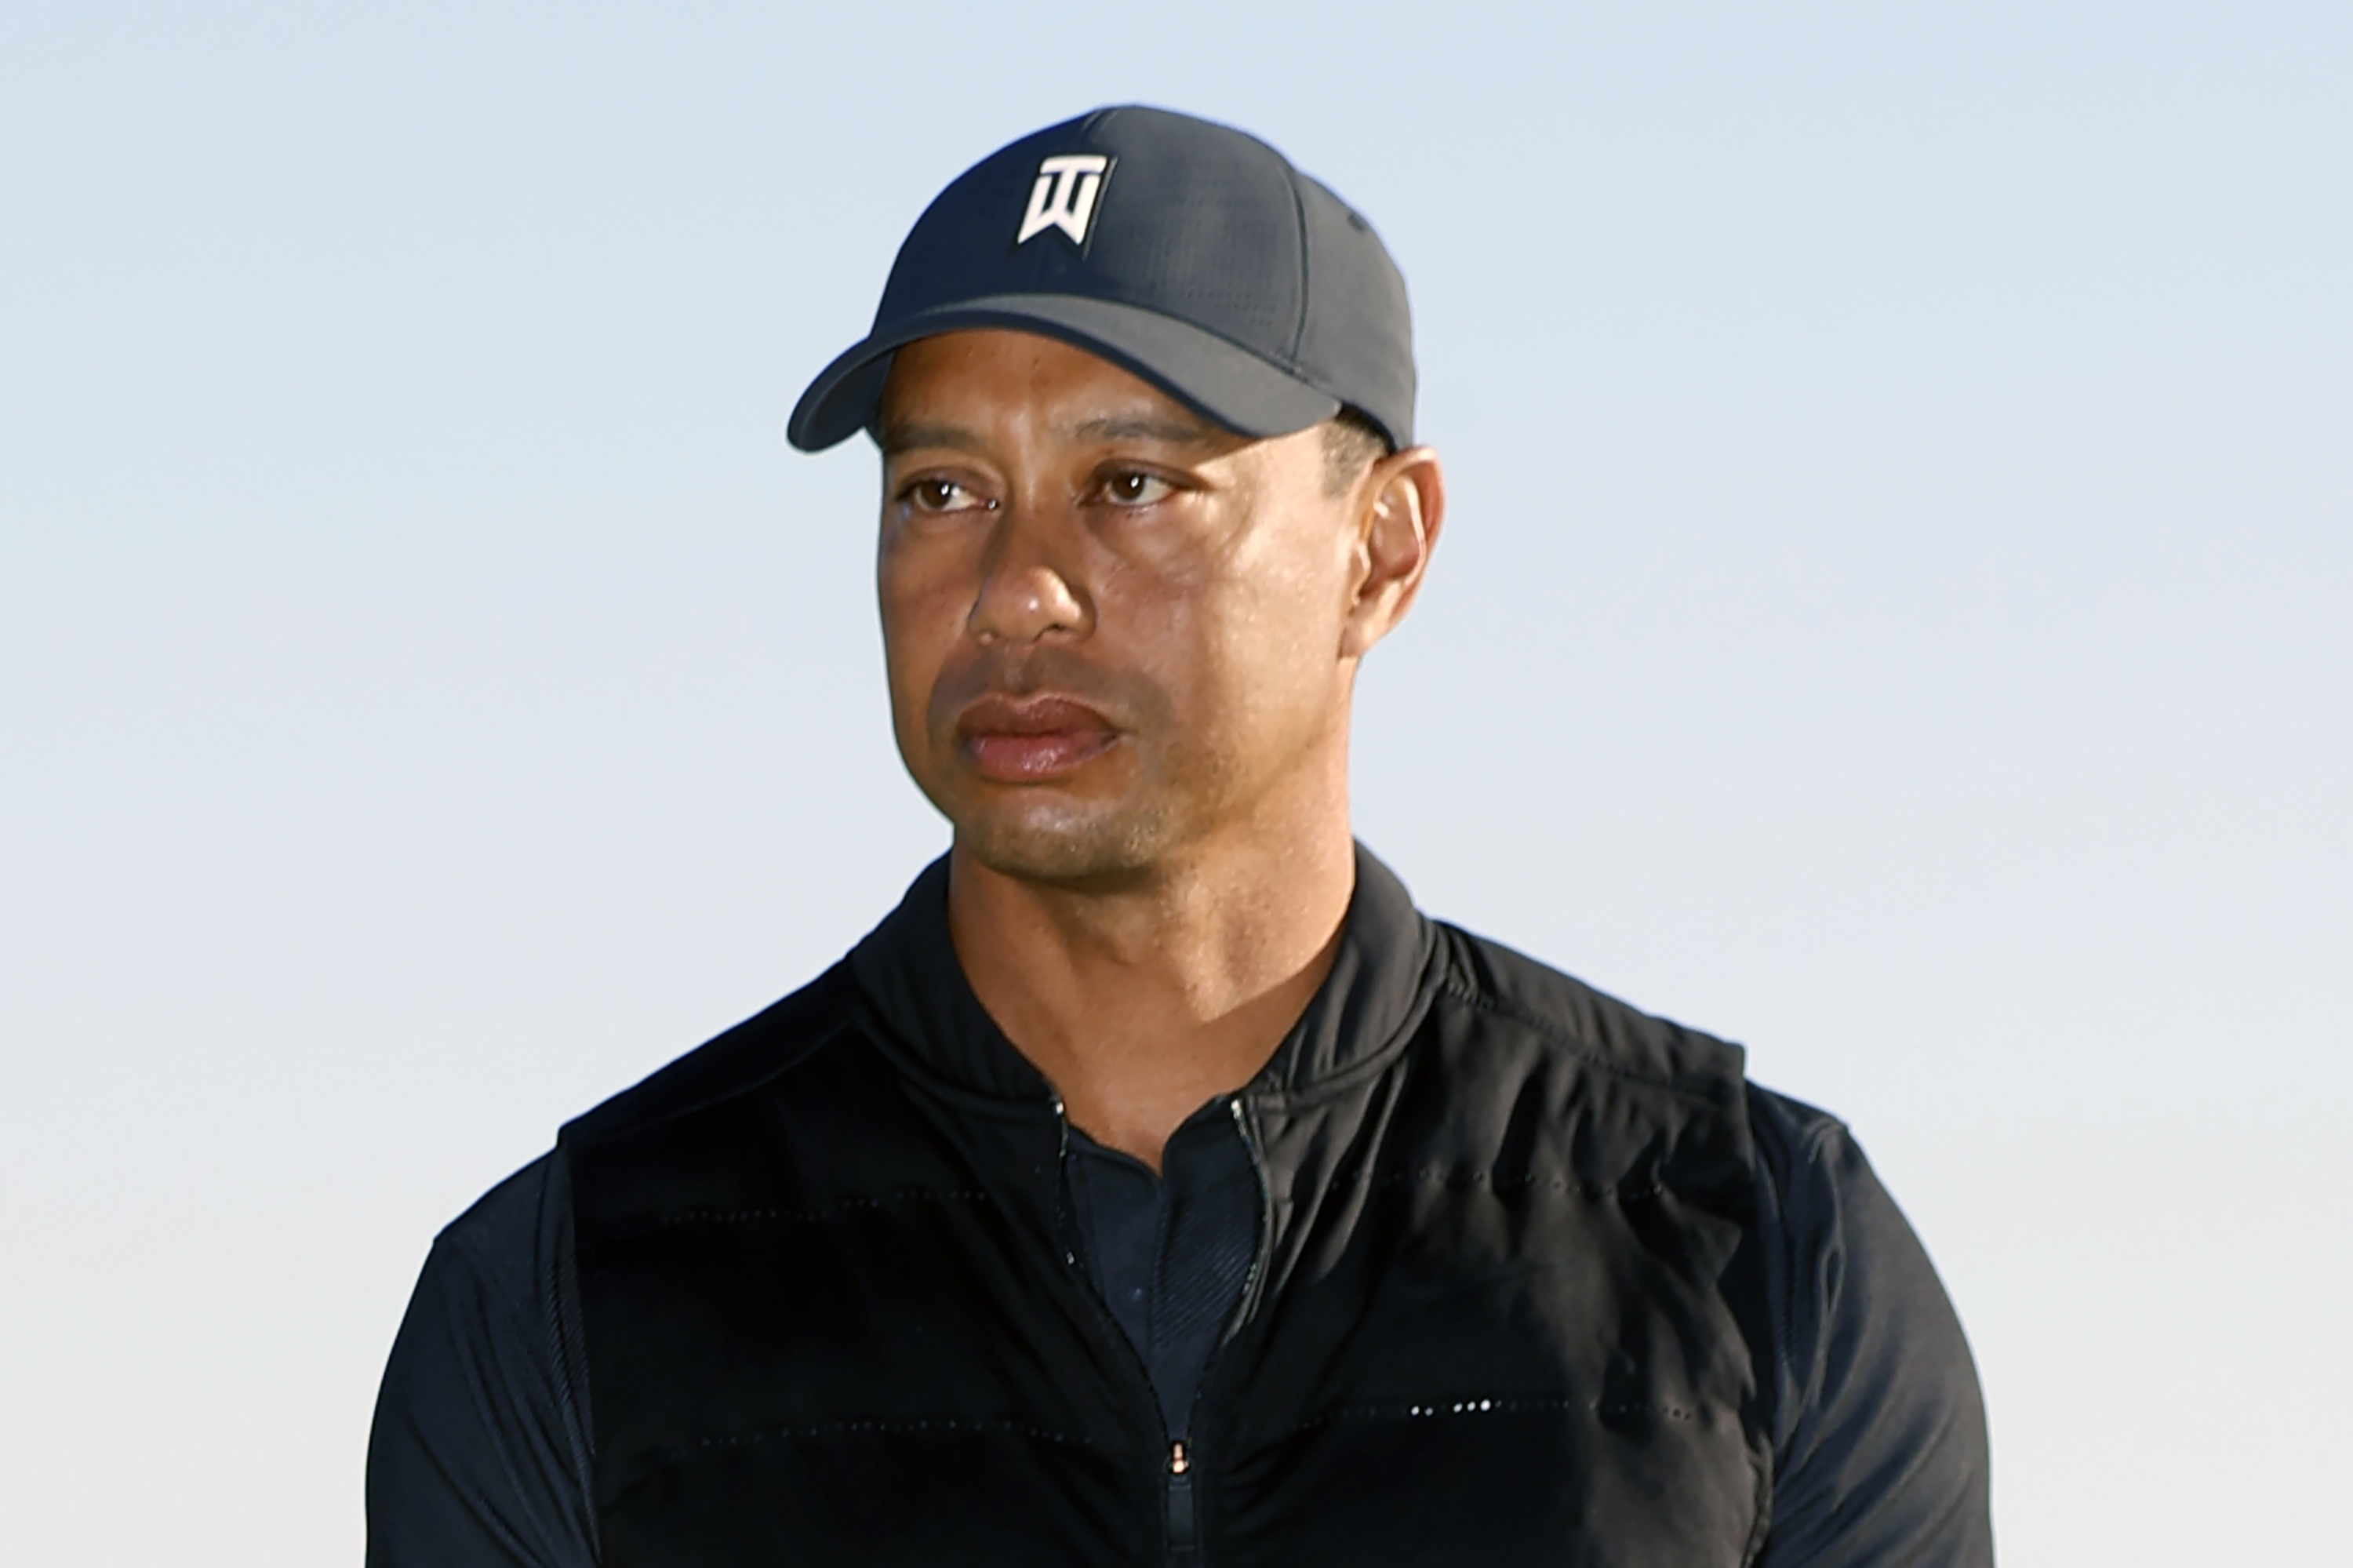 Tiger Woods Faces Long Recovery after Car Crash